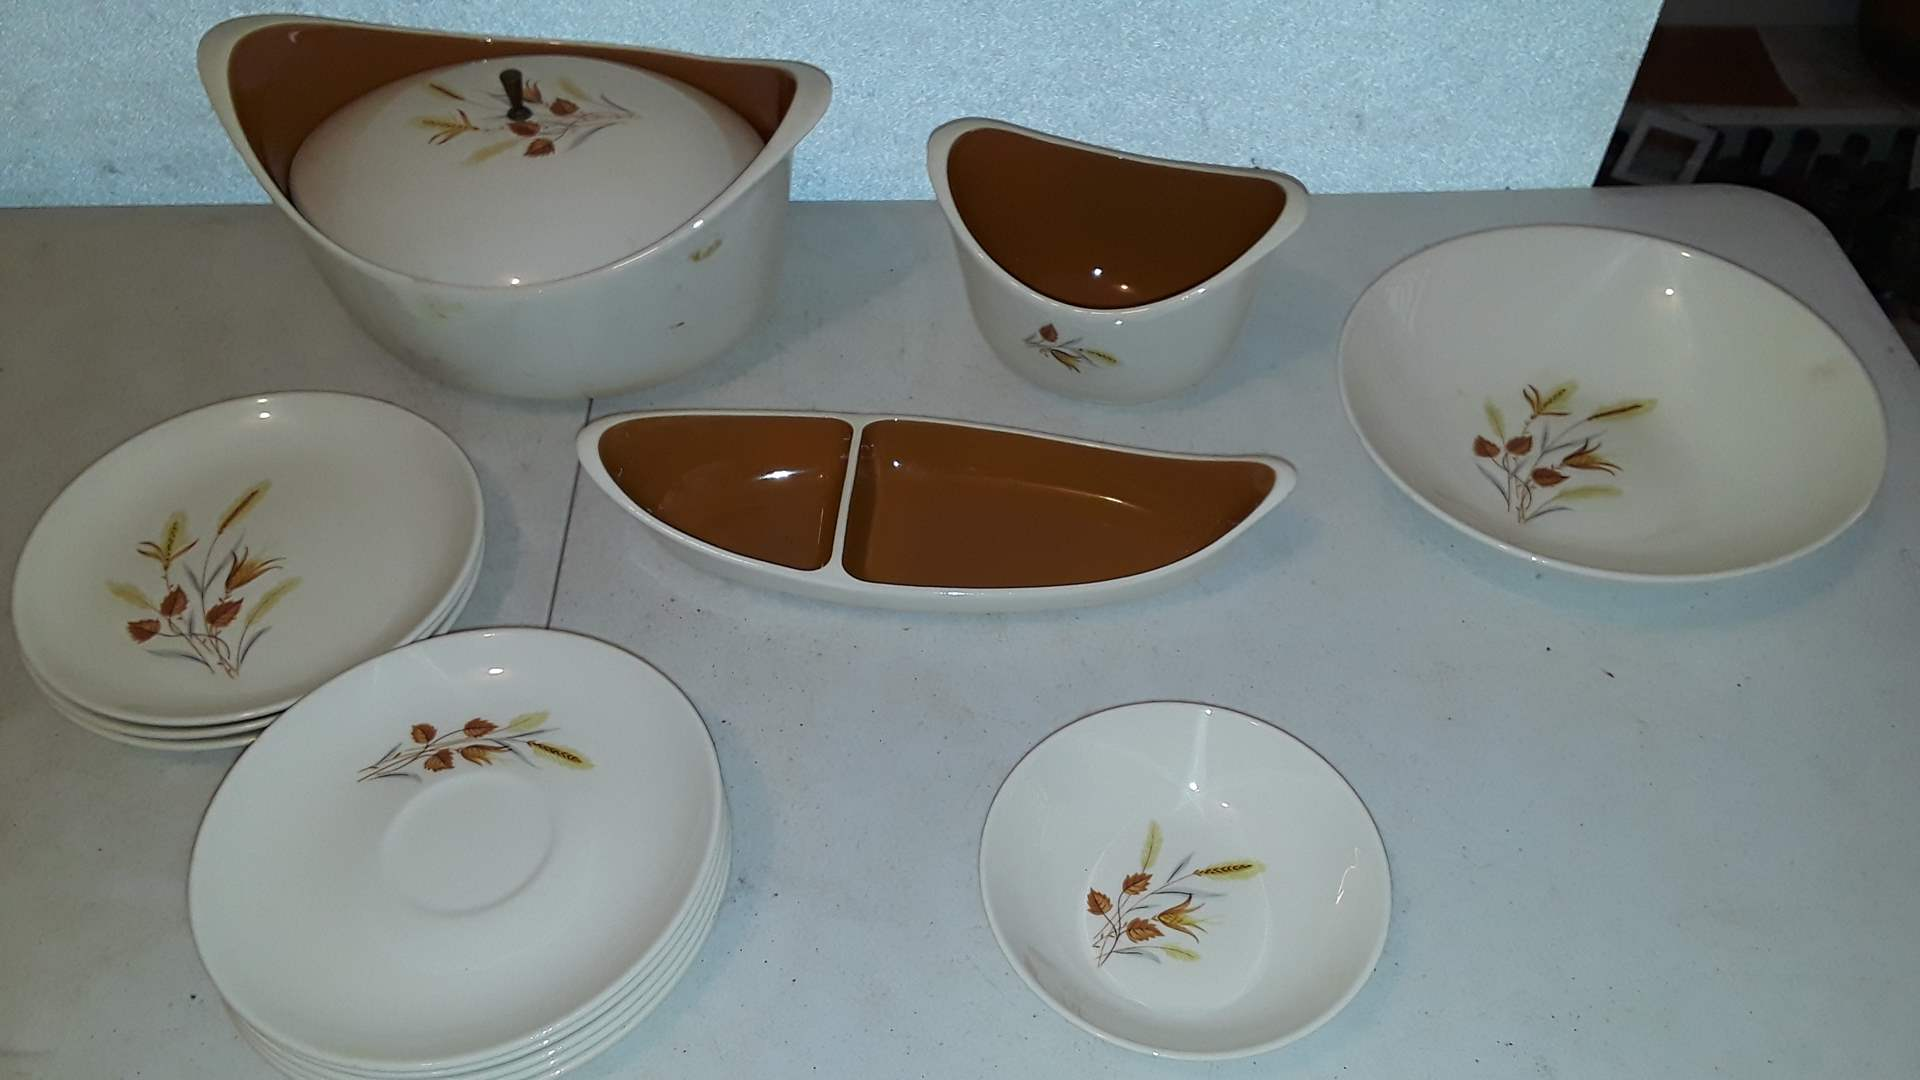 Lot # 115 EVER YOURS AUTUMN HARVEST BY TAYLOR SMITH TAYLOR DISH SET, GOOD CONDITION